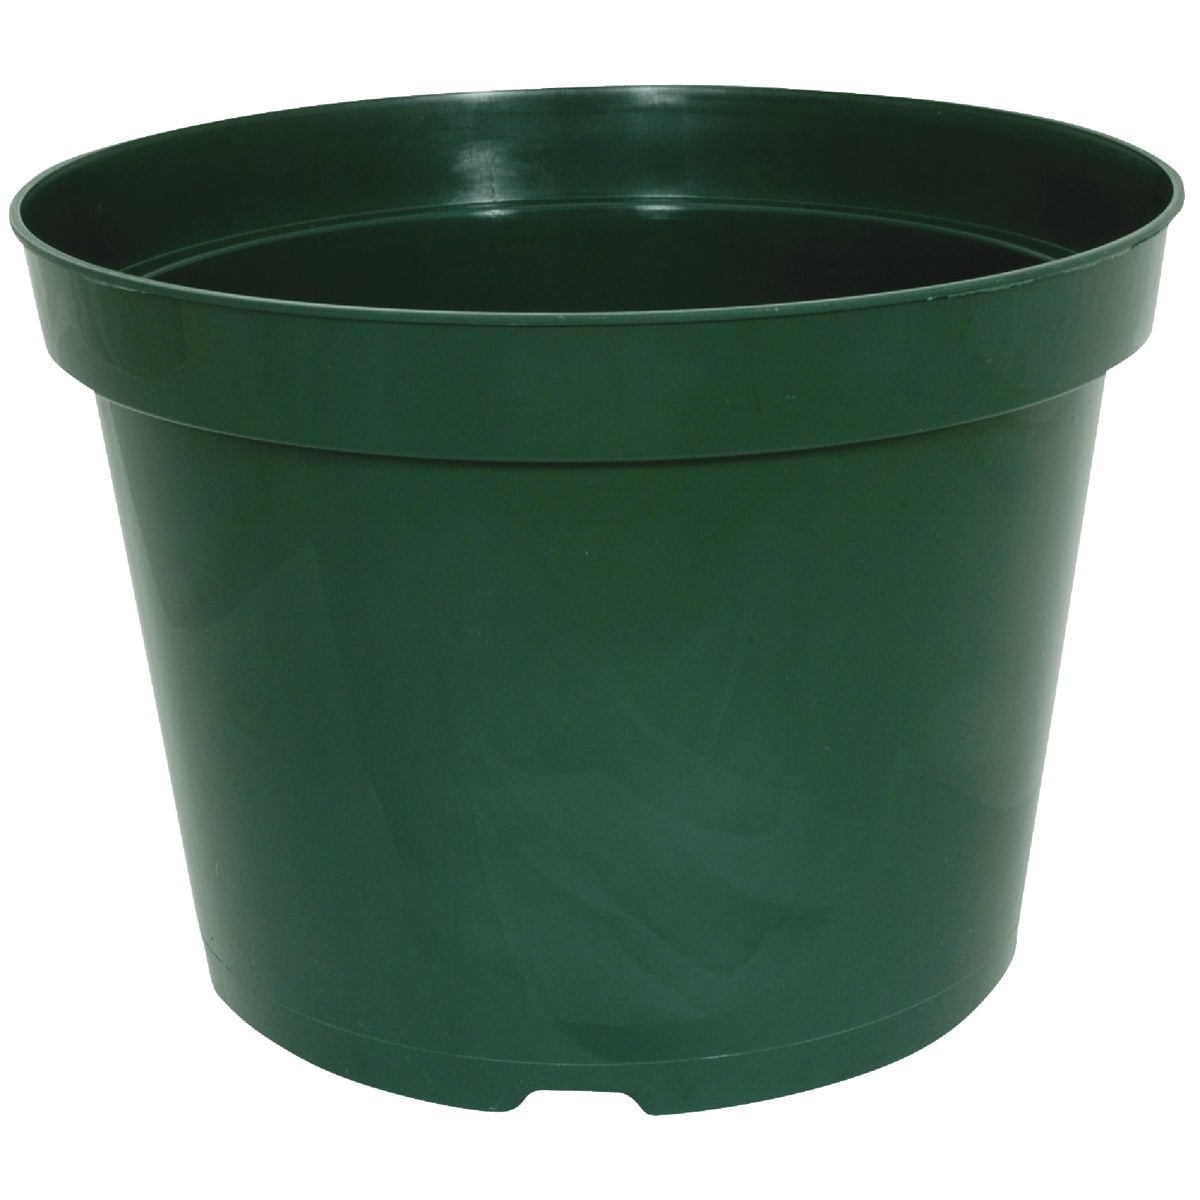 "4"" GREEN GROWER POT - STR04000B71 by Myers Industries Inc"